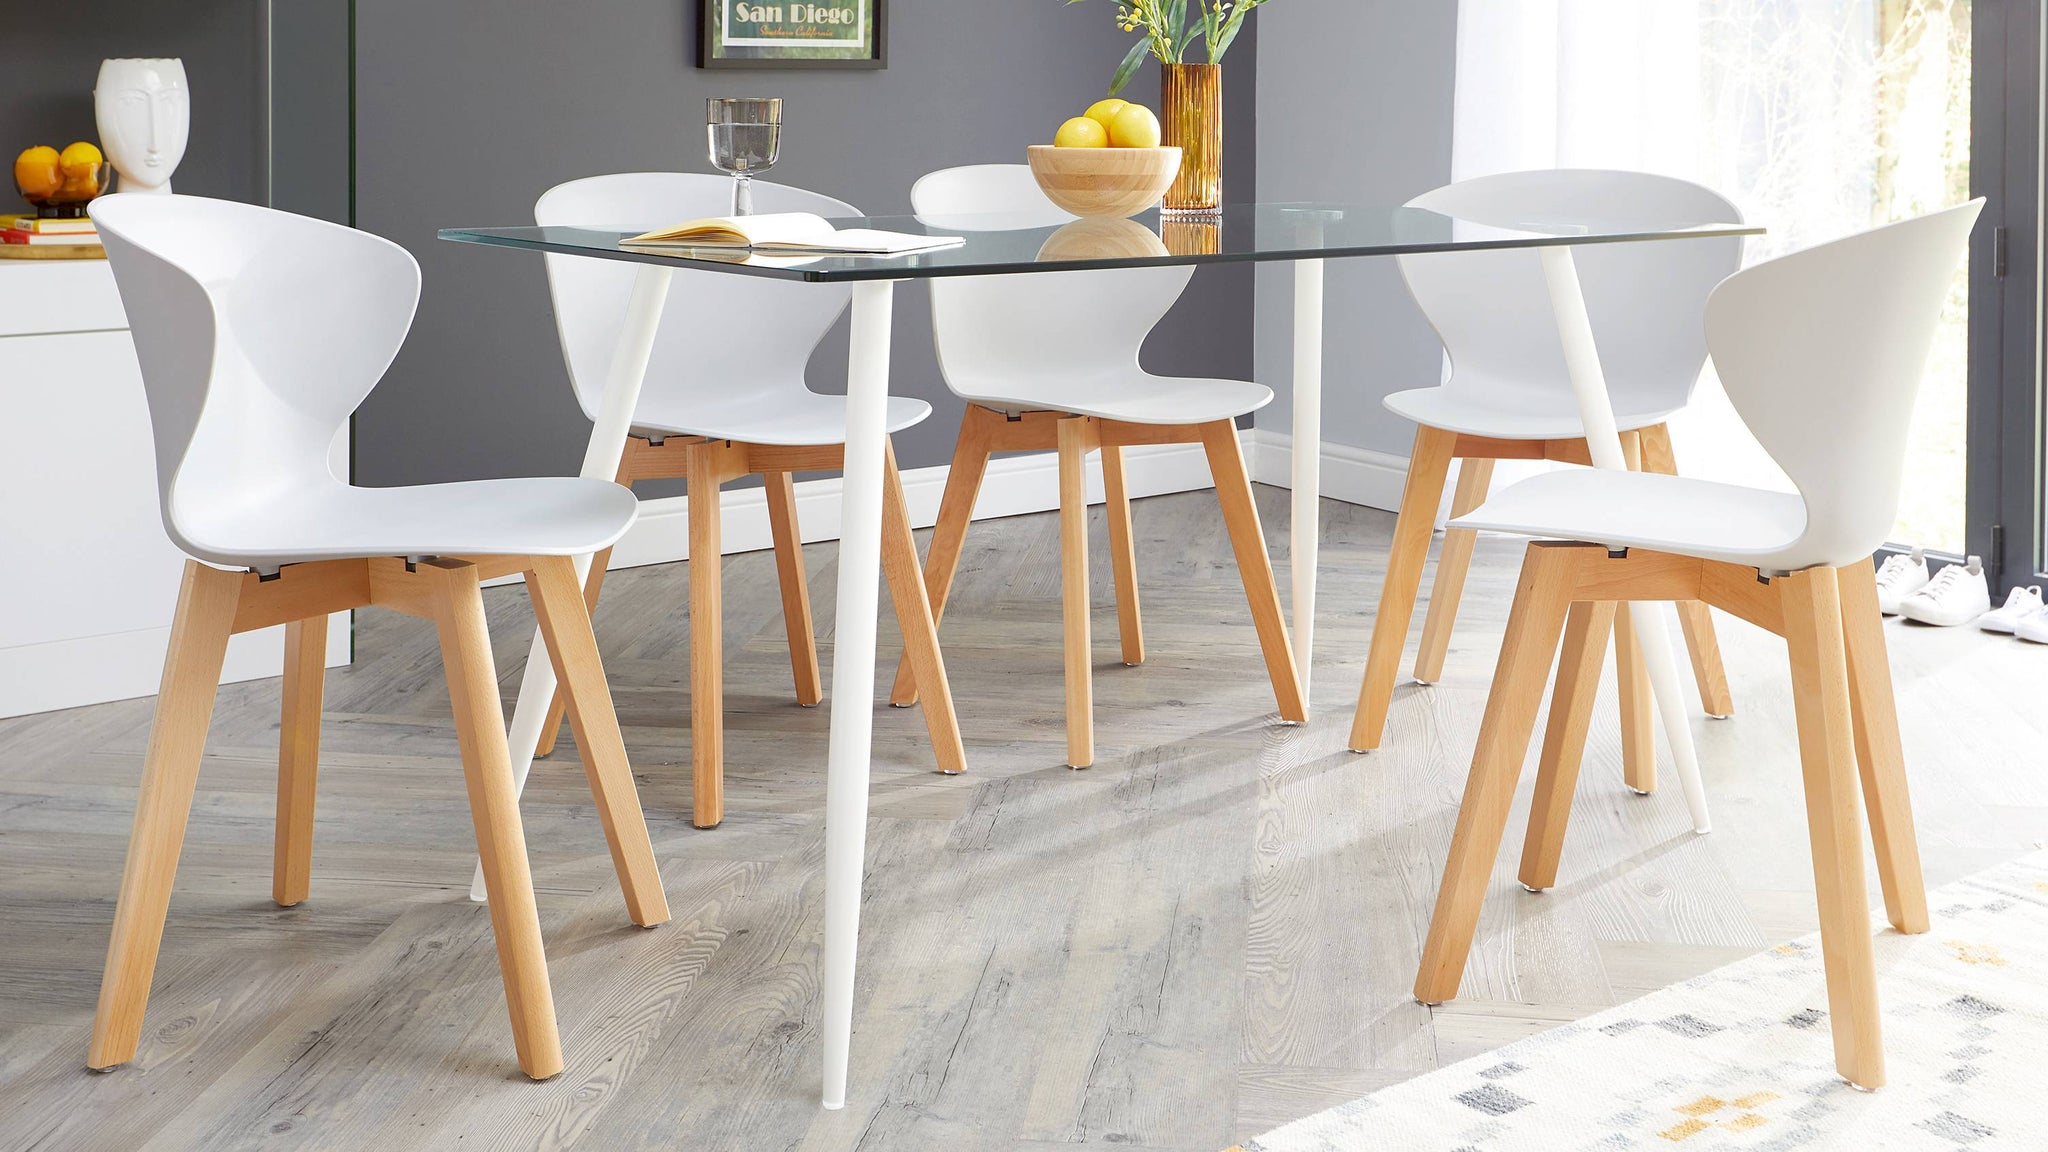 Wooden modern kitchen chairs